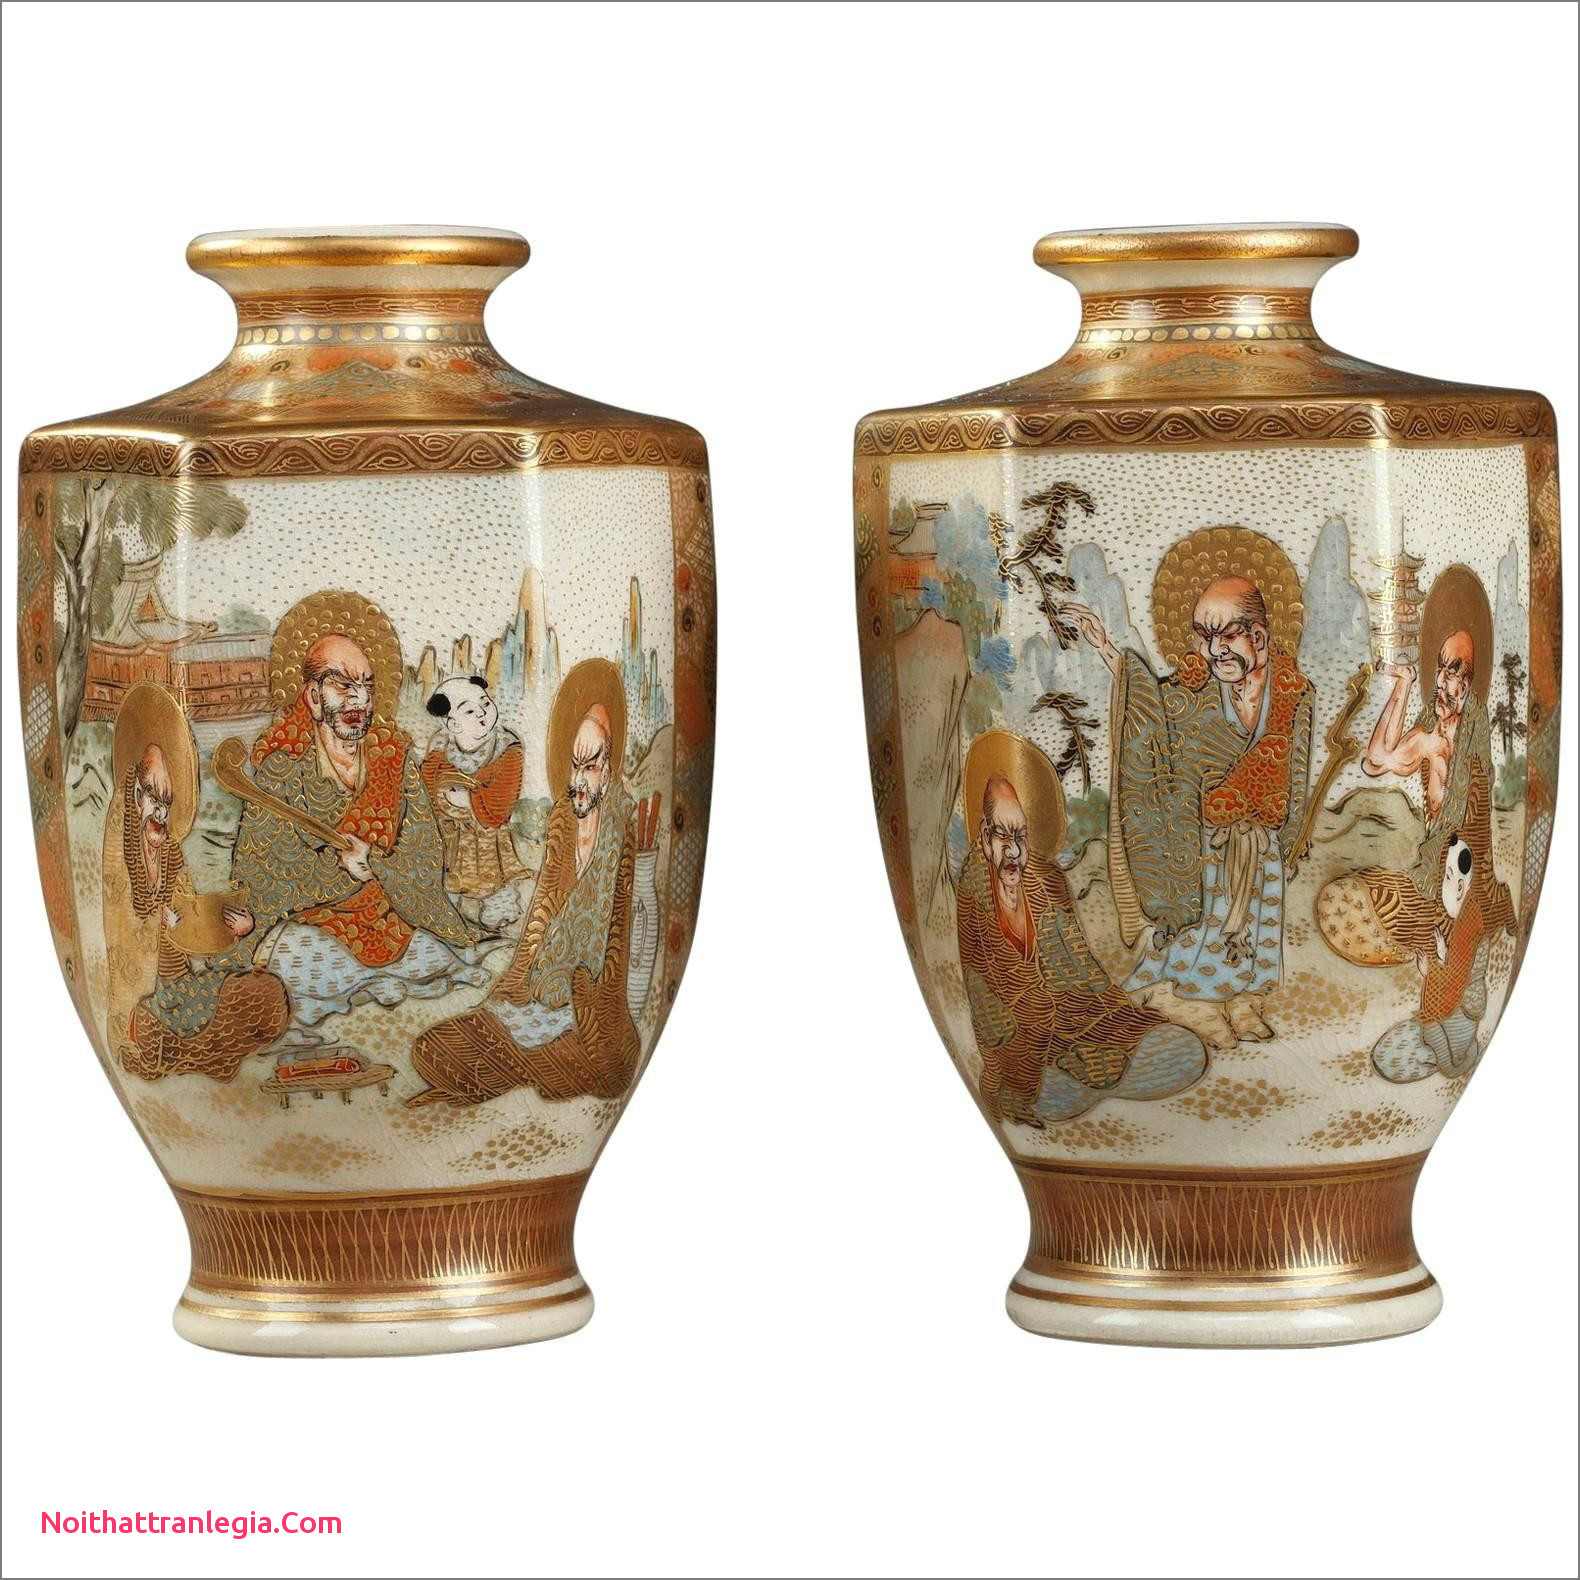 antique japanese vases marks of 20 chinese antique vase noithattranlegia vases design pertaining to chinese ginger jar table lamps elegant pair 20th century general porcelain trenton nj usa industrial